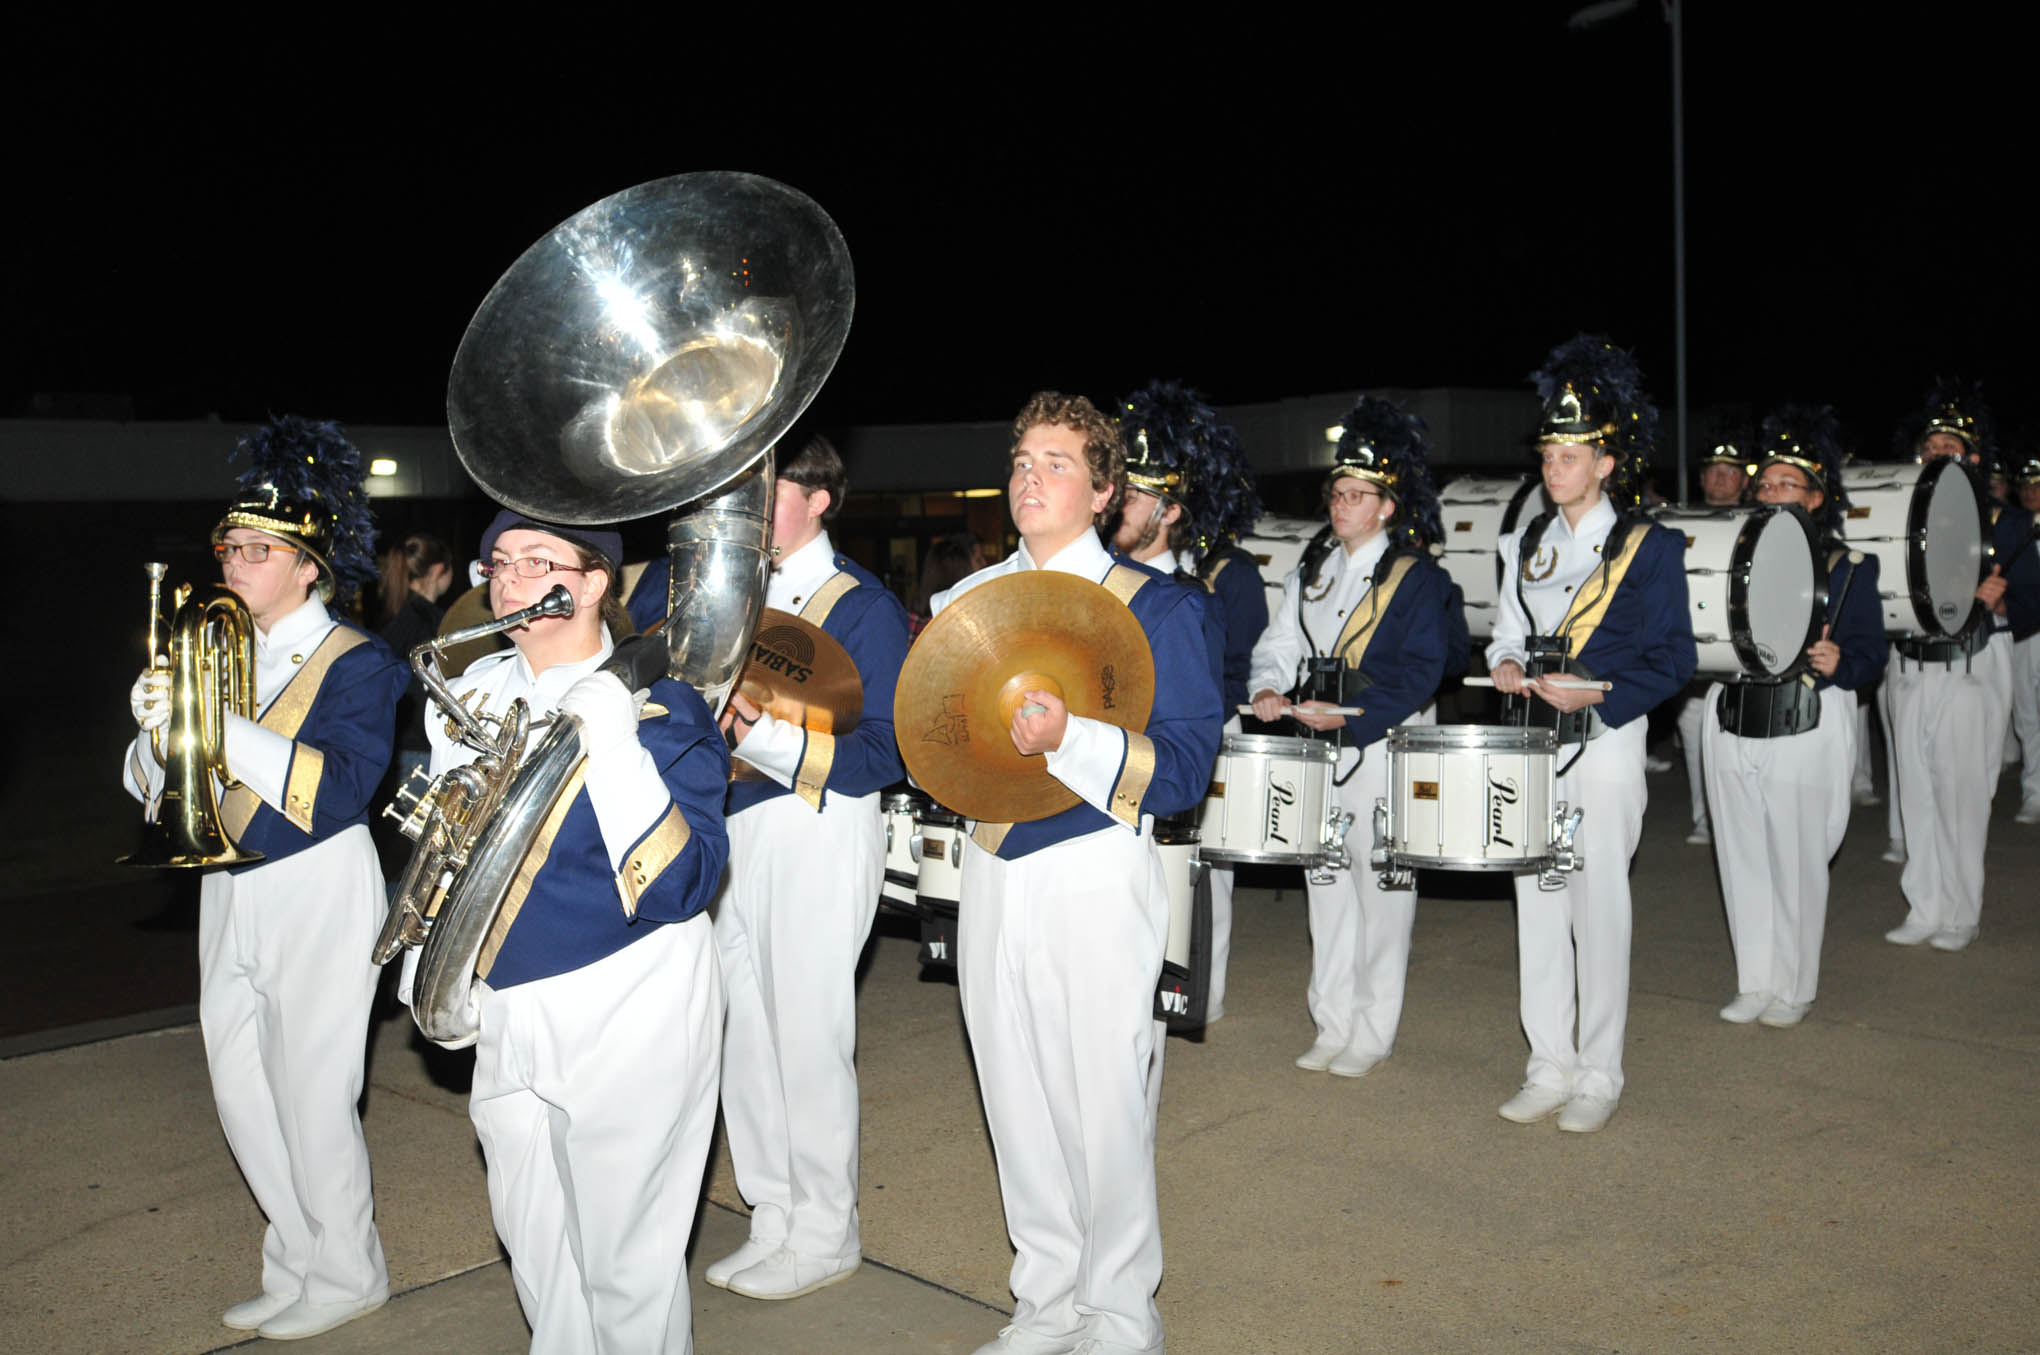 Click to enlarge,  The Lee County High School Marching Band participated in the Central Carolina Community College Christmas Tree Lighting celebration.